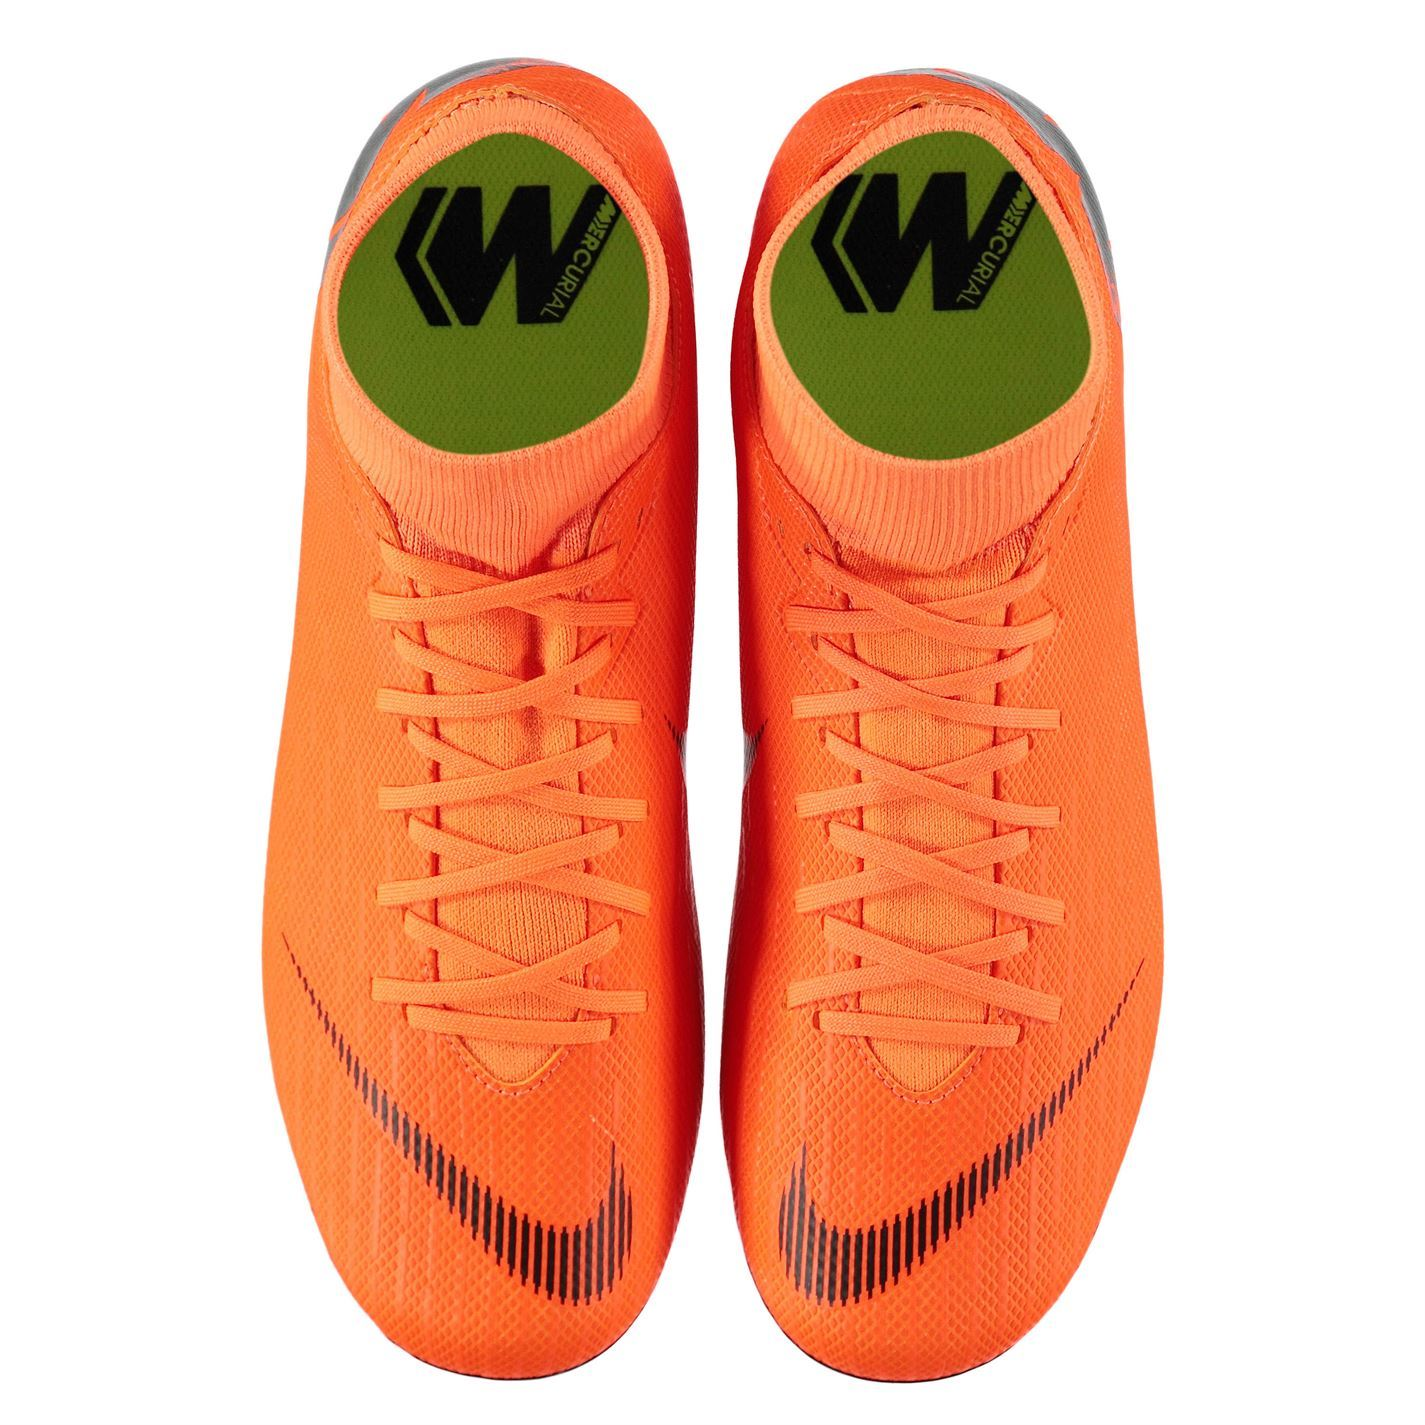 hot sale online 28d4a cf032 Nike Mercurial Superfly Academy Firm Ground Football Boots Mens Or Soccer  Cleat